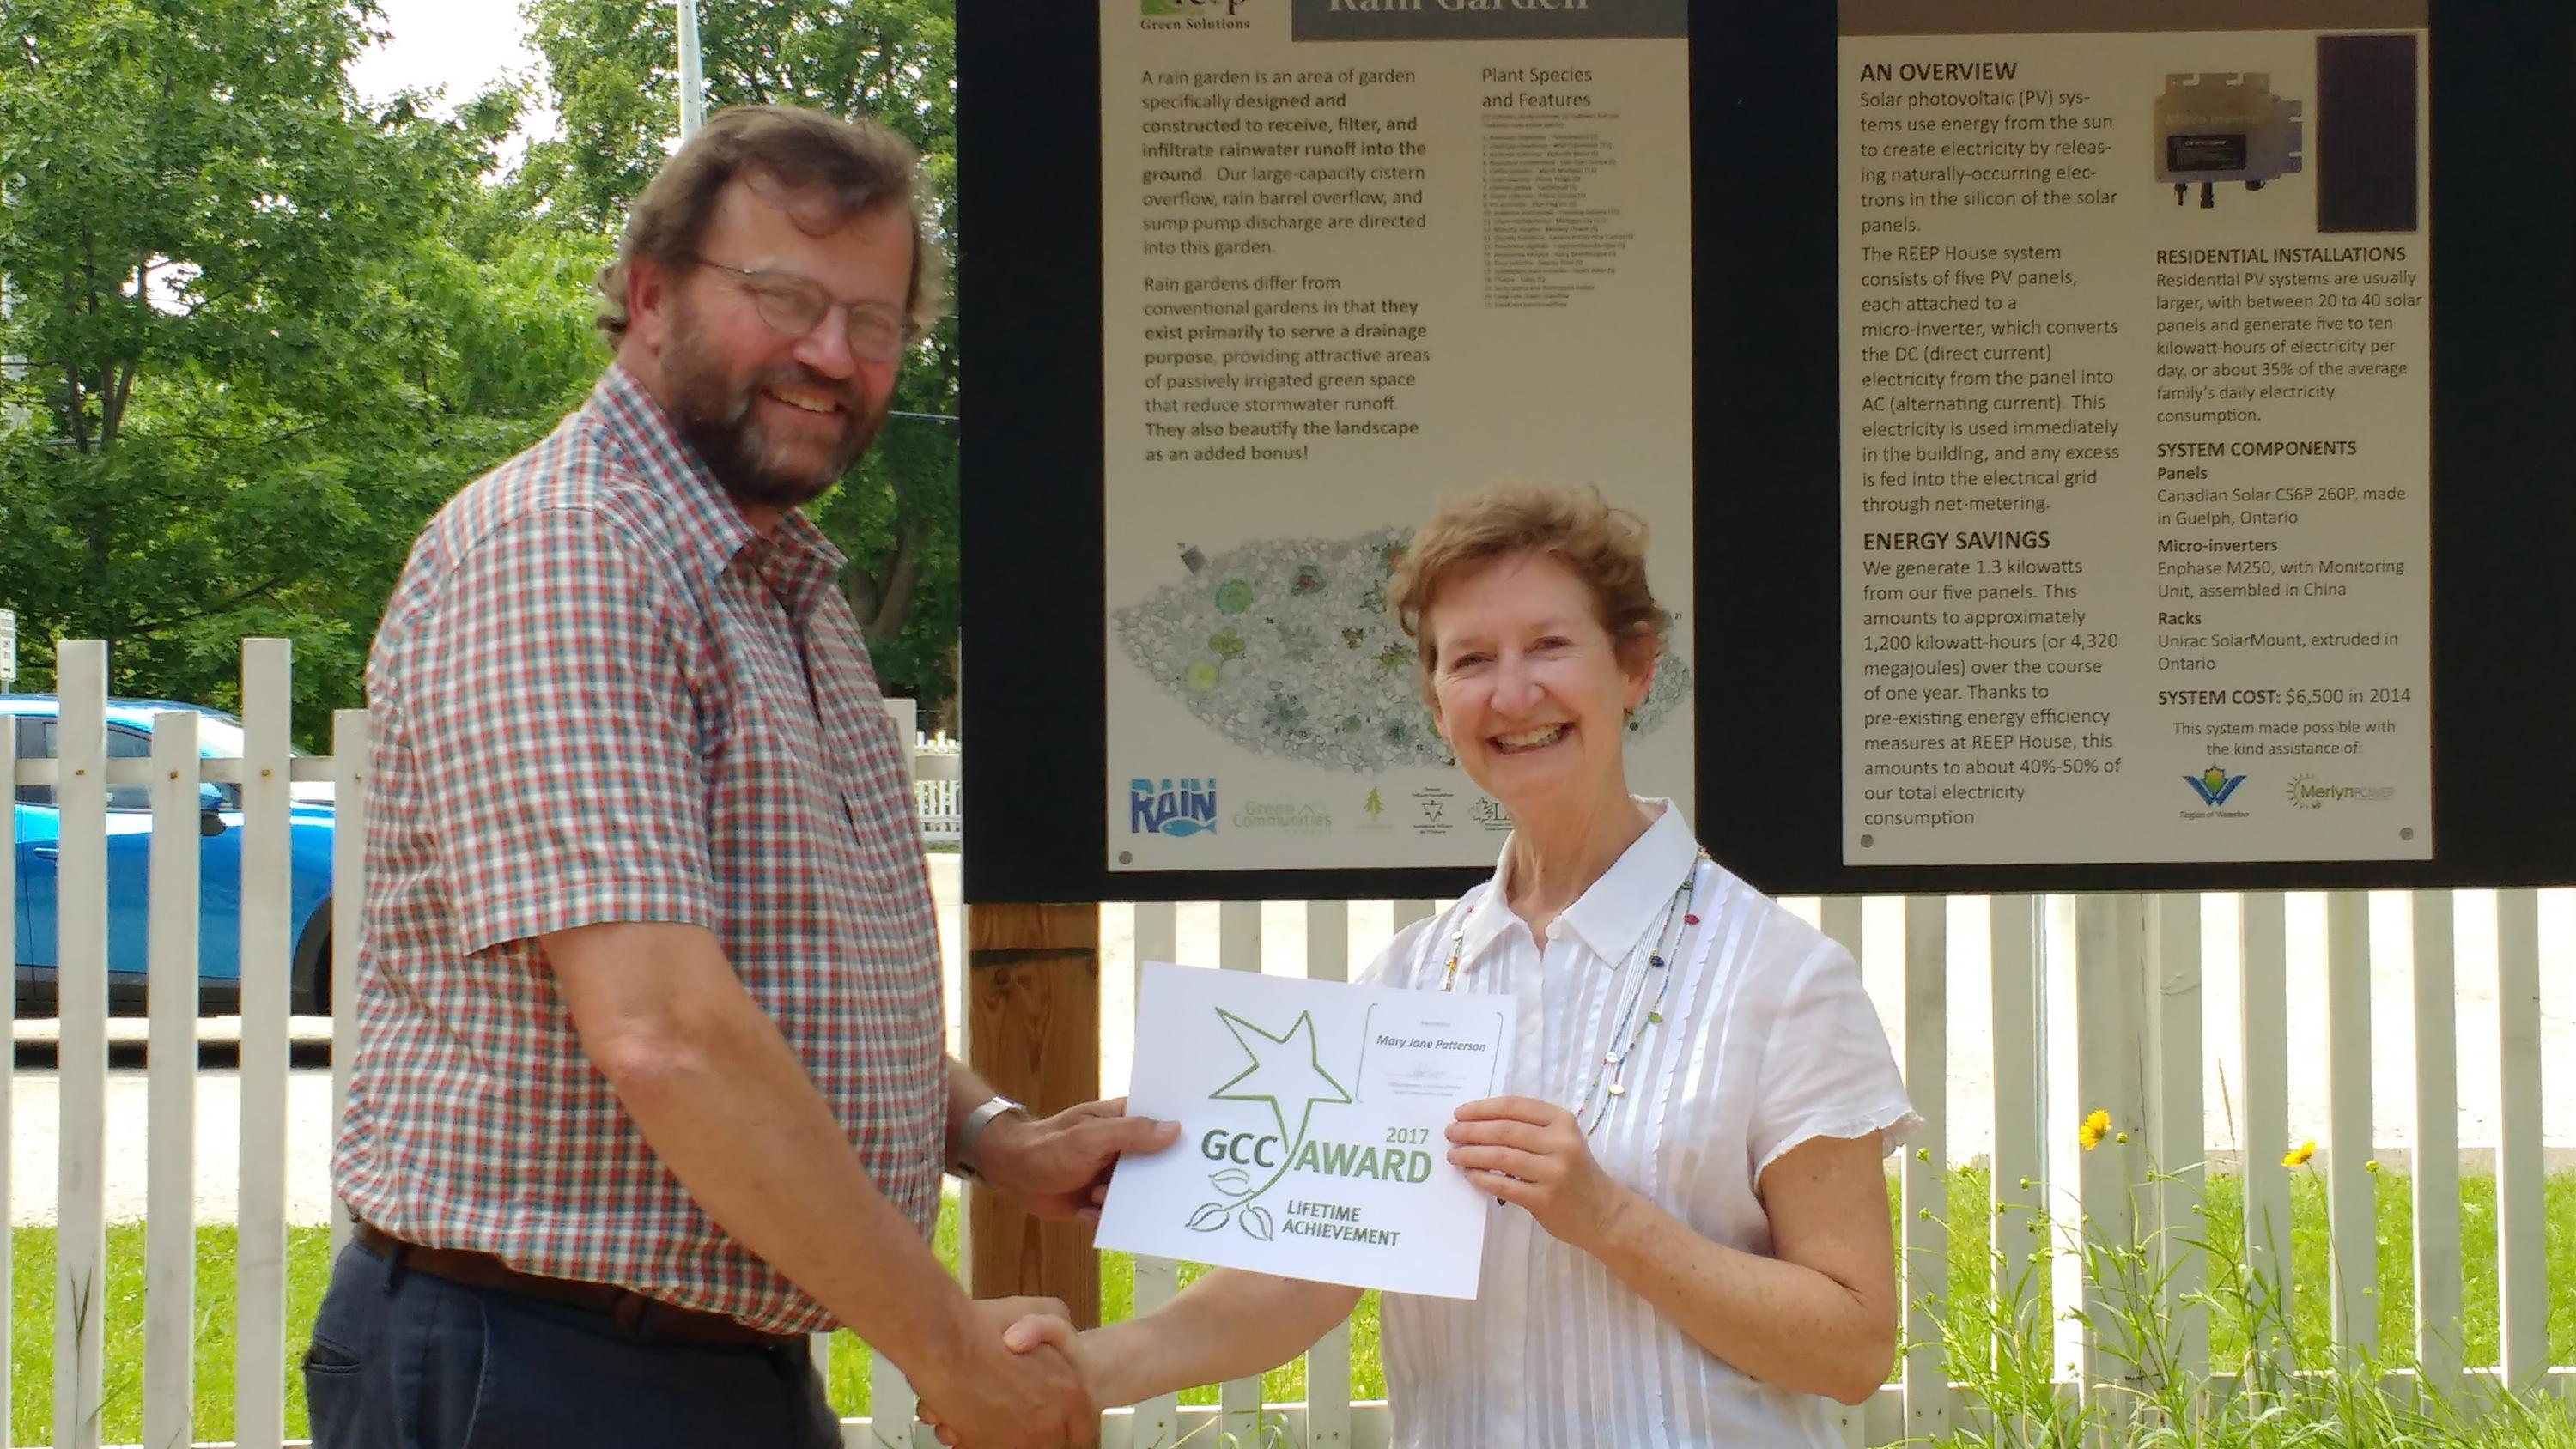 Mary Jan recieving an award for making the community greener